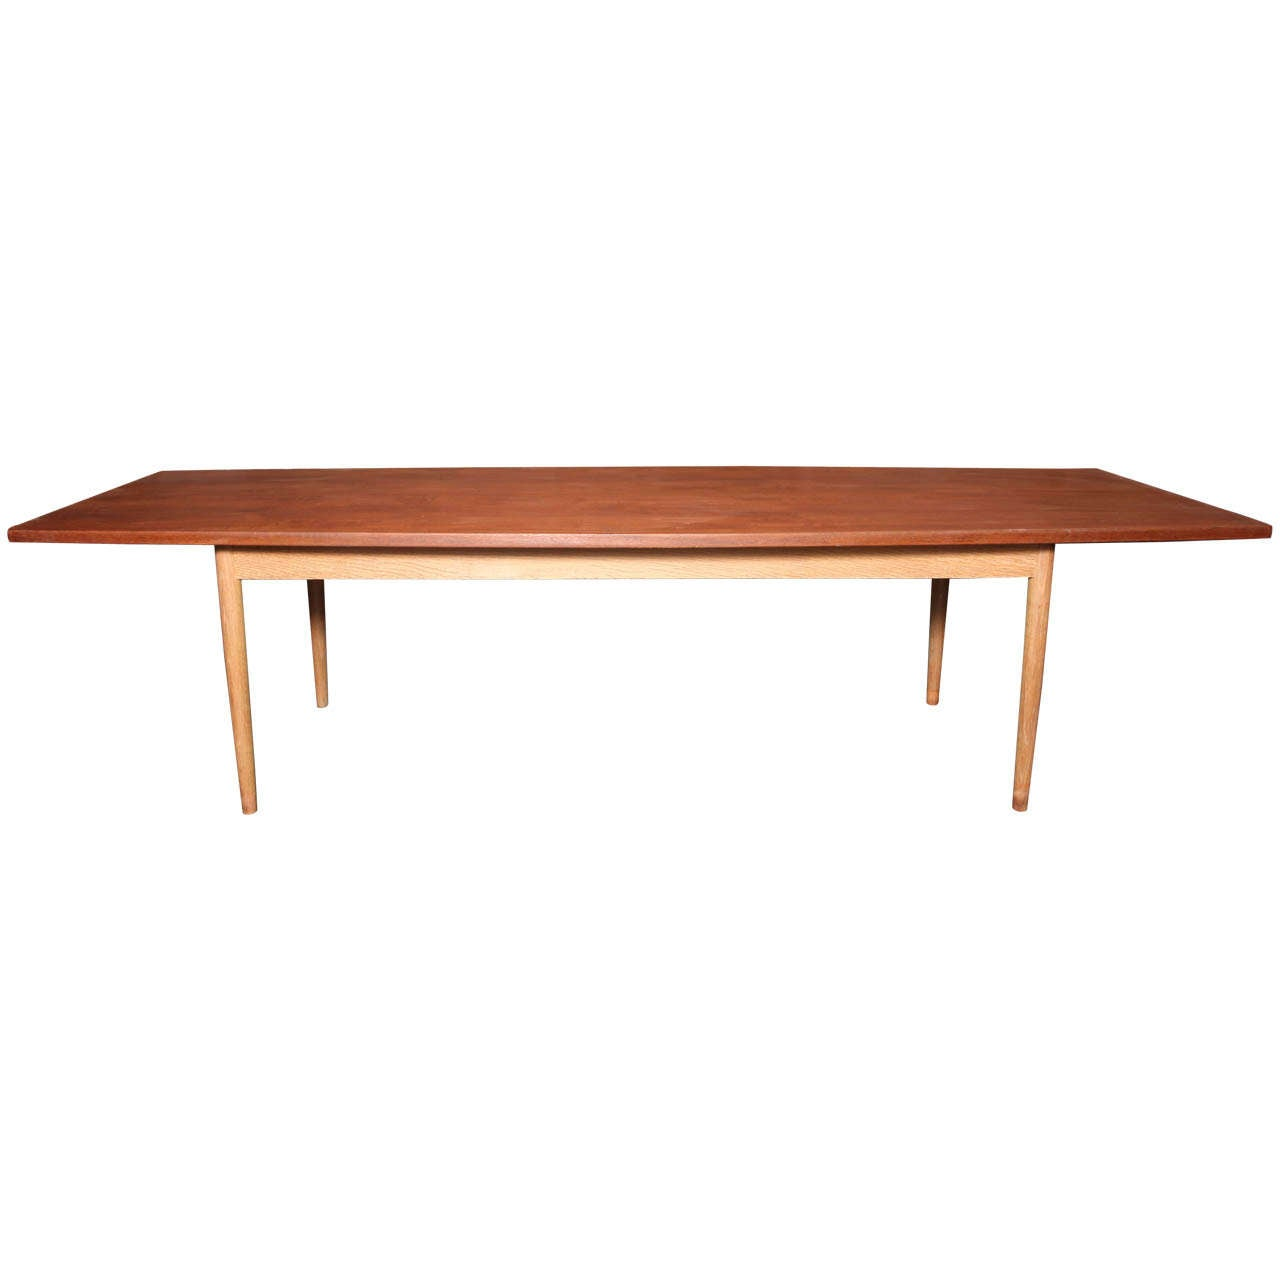 Danish modern teak dining conference table with oak legs for Modern oak dining table